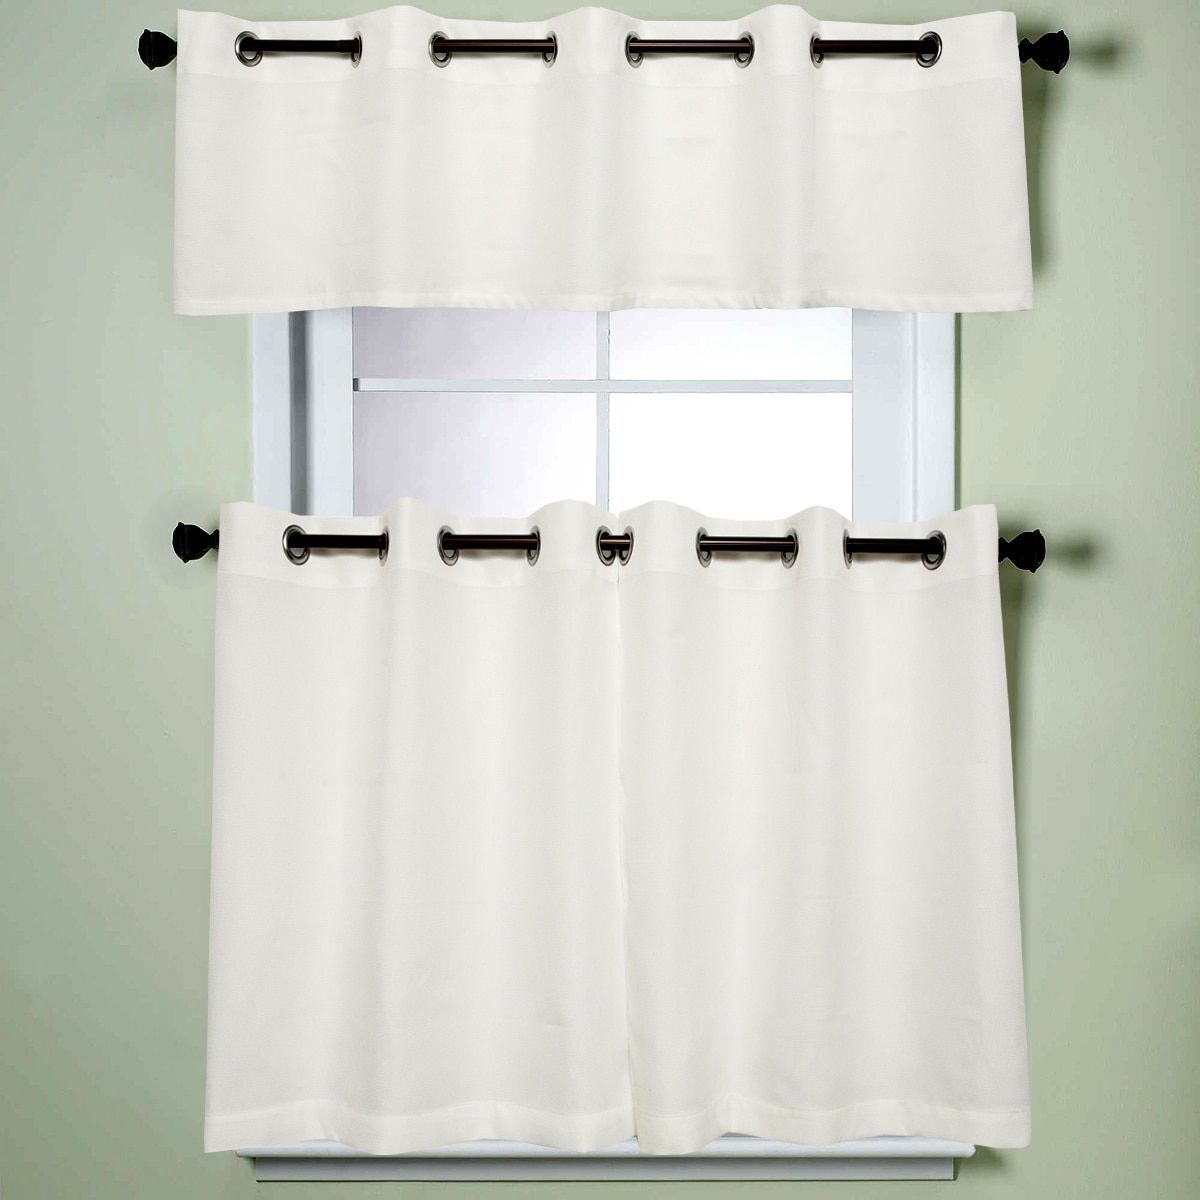 Modern Subtle Texture Solid White Kitchen Curtain Parts With Regarding Modern Subtle Texture Solid White Kitchen Curtain Parts With Grommets Tier And Valance Options (View 2 of 20)